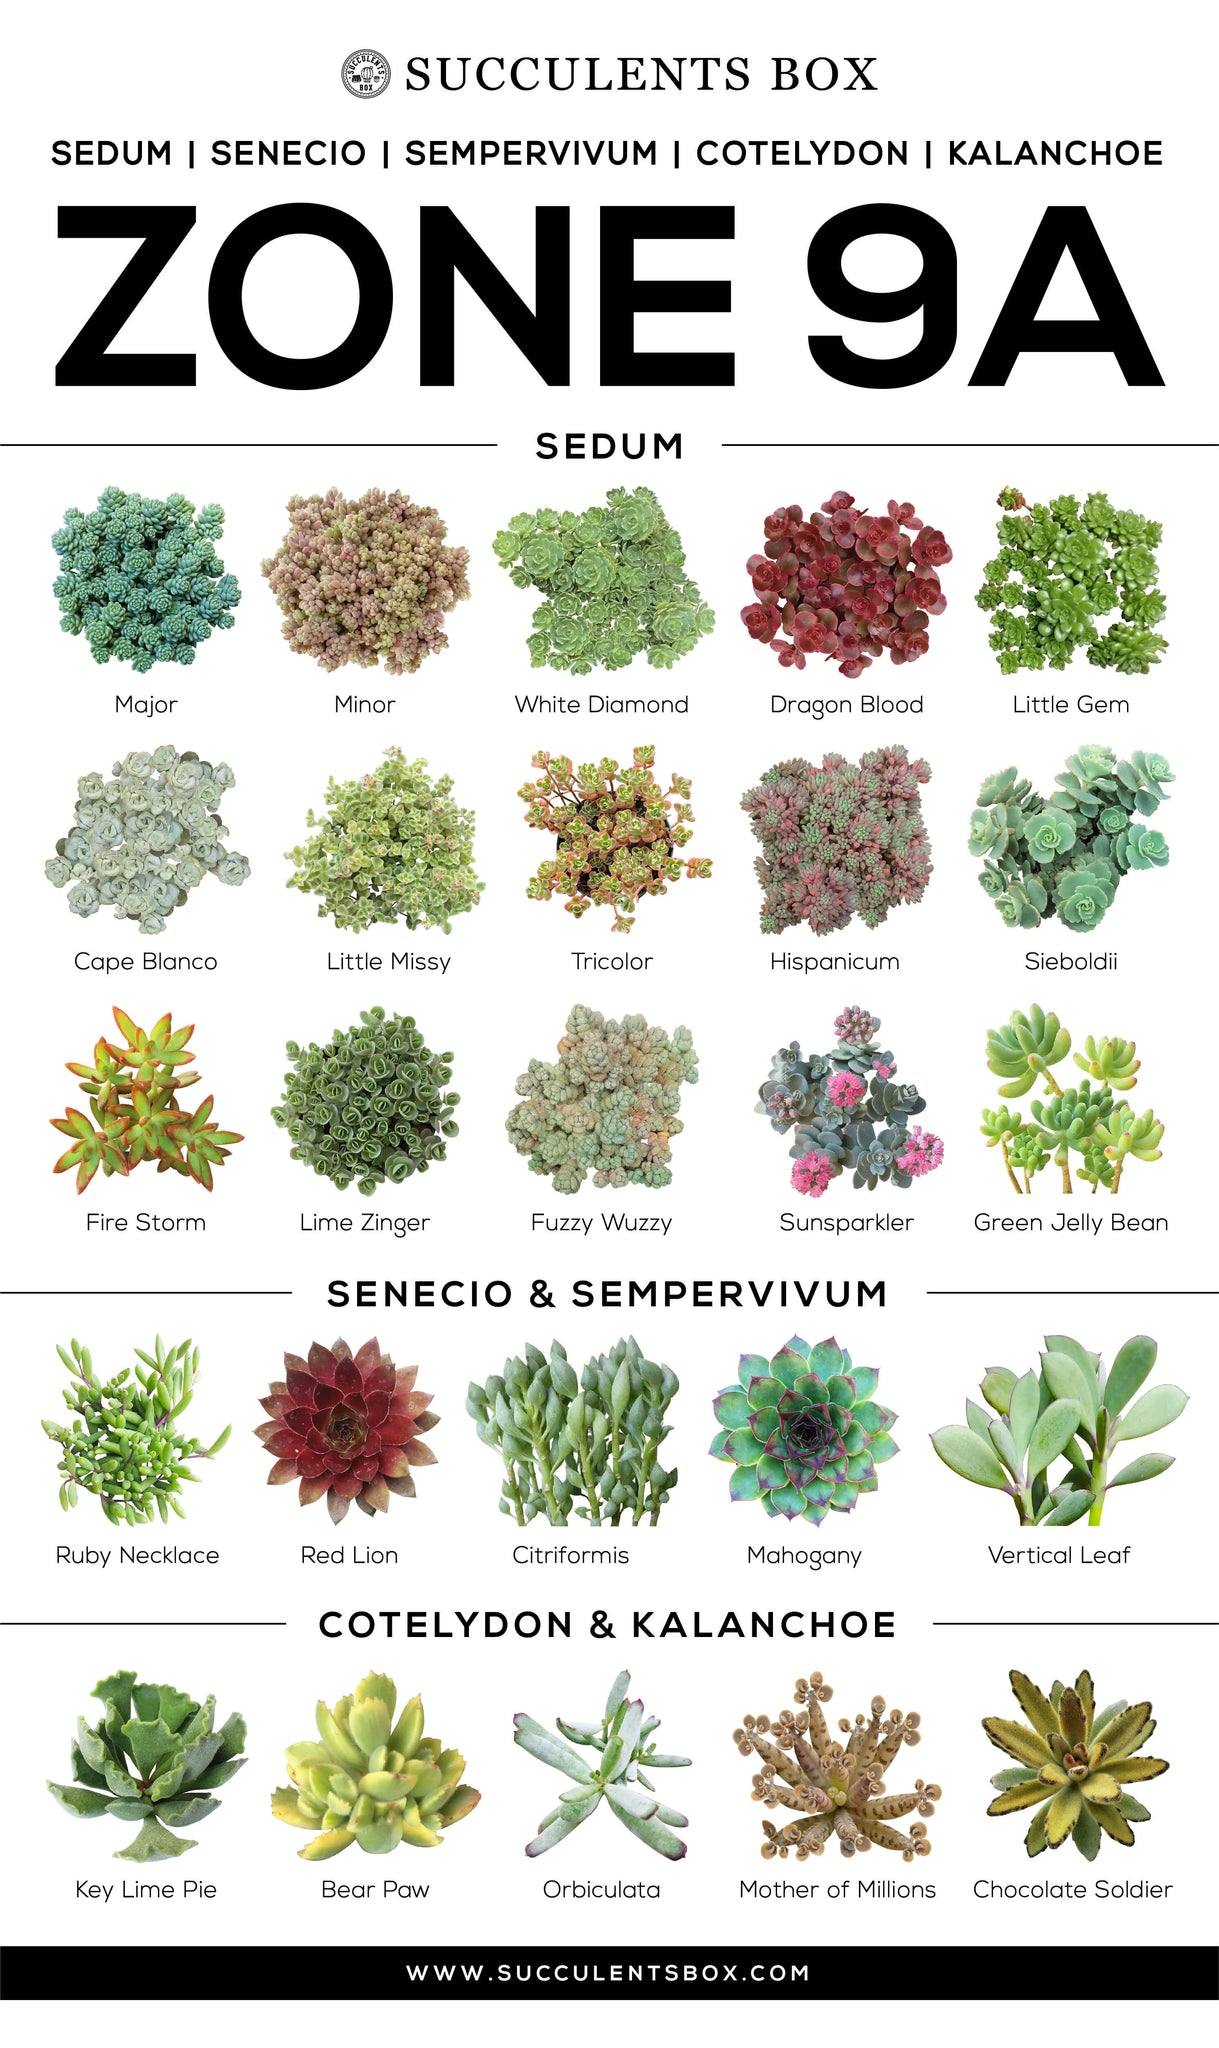 Types of Succulents Zone 9a